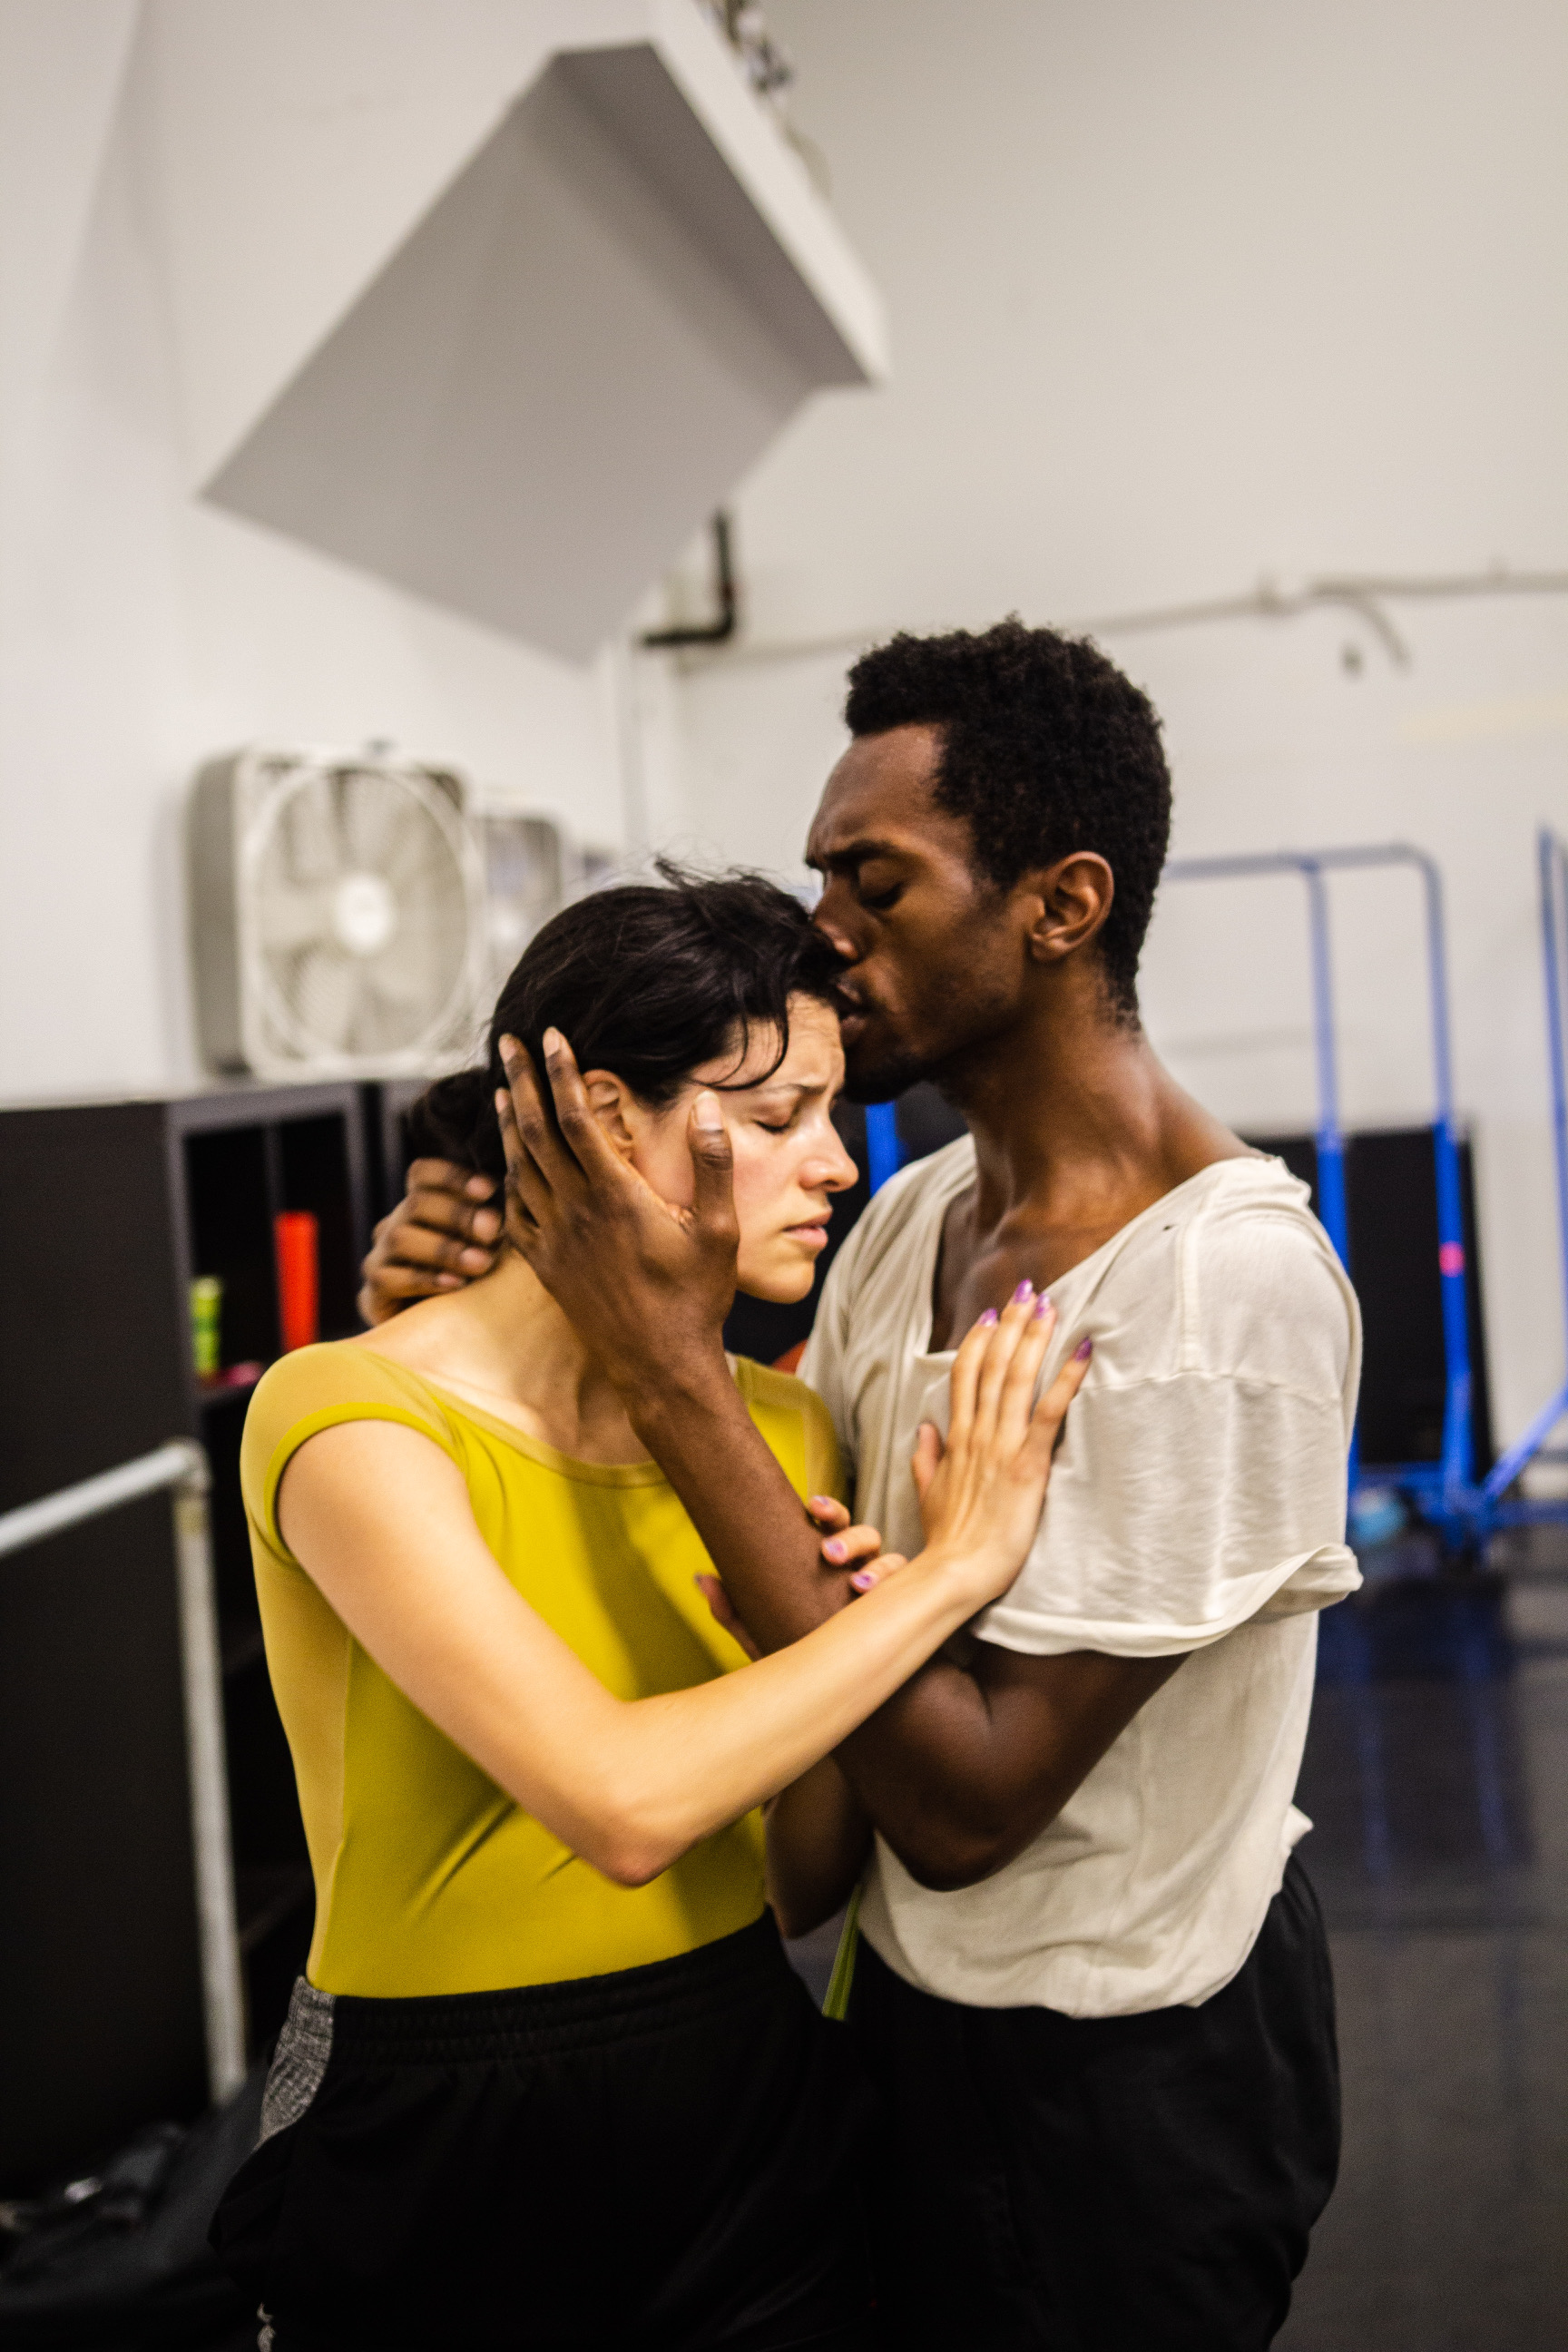 Dancers: Jessica Gadzinski and Raymond Ejiofor  Photo by: Frederick Diaz